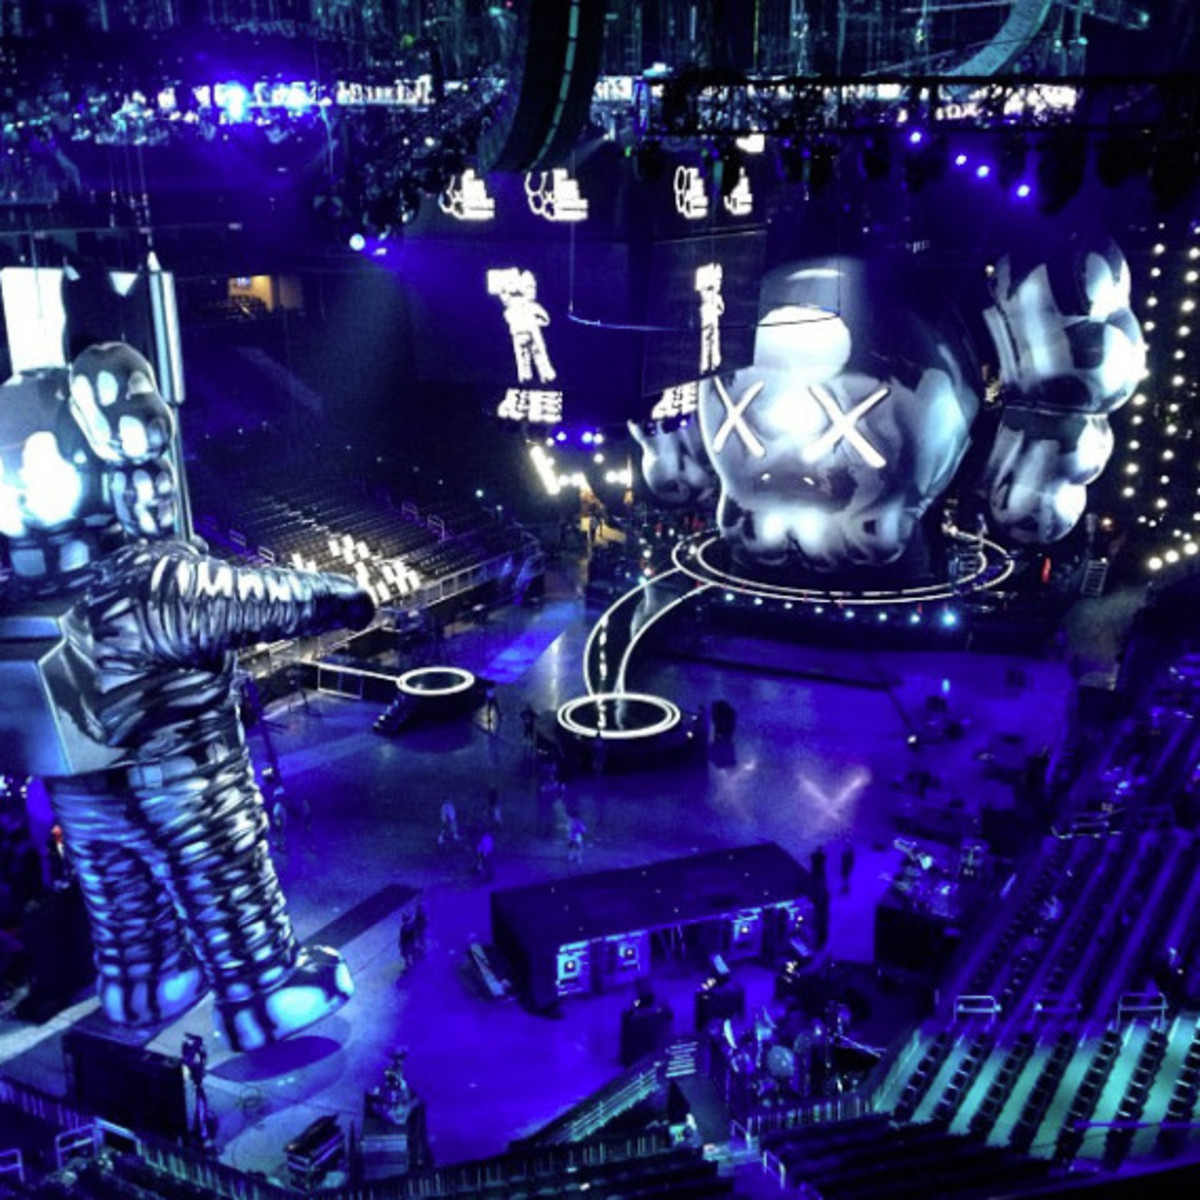 2013 MTV Video Music Awards Unveiled 60-Foot Moonman Statue by KAWS - 2